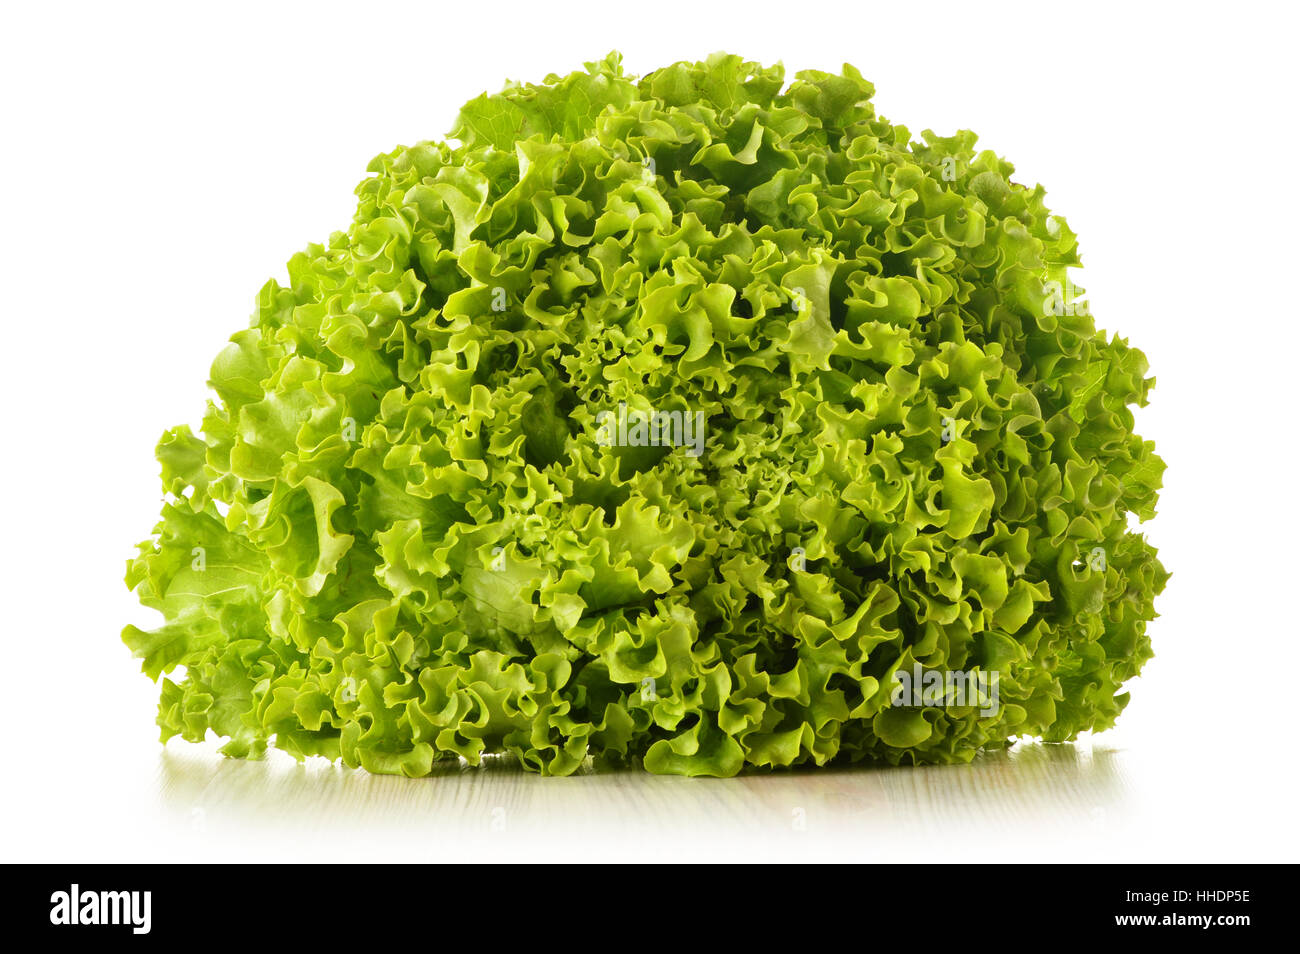 food, aliment, isolated, vegetable, lettuce, organic, grocery, lawn, green, - Stock Image